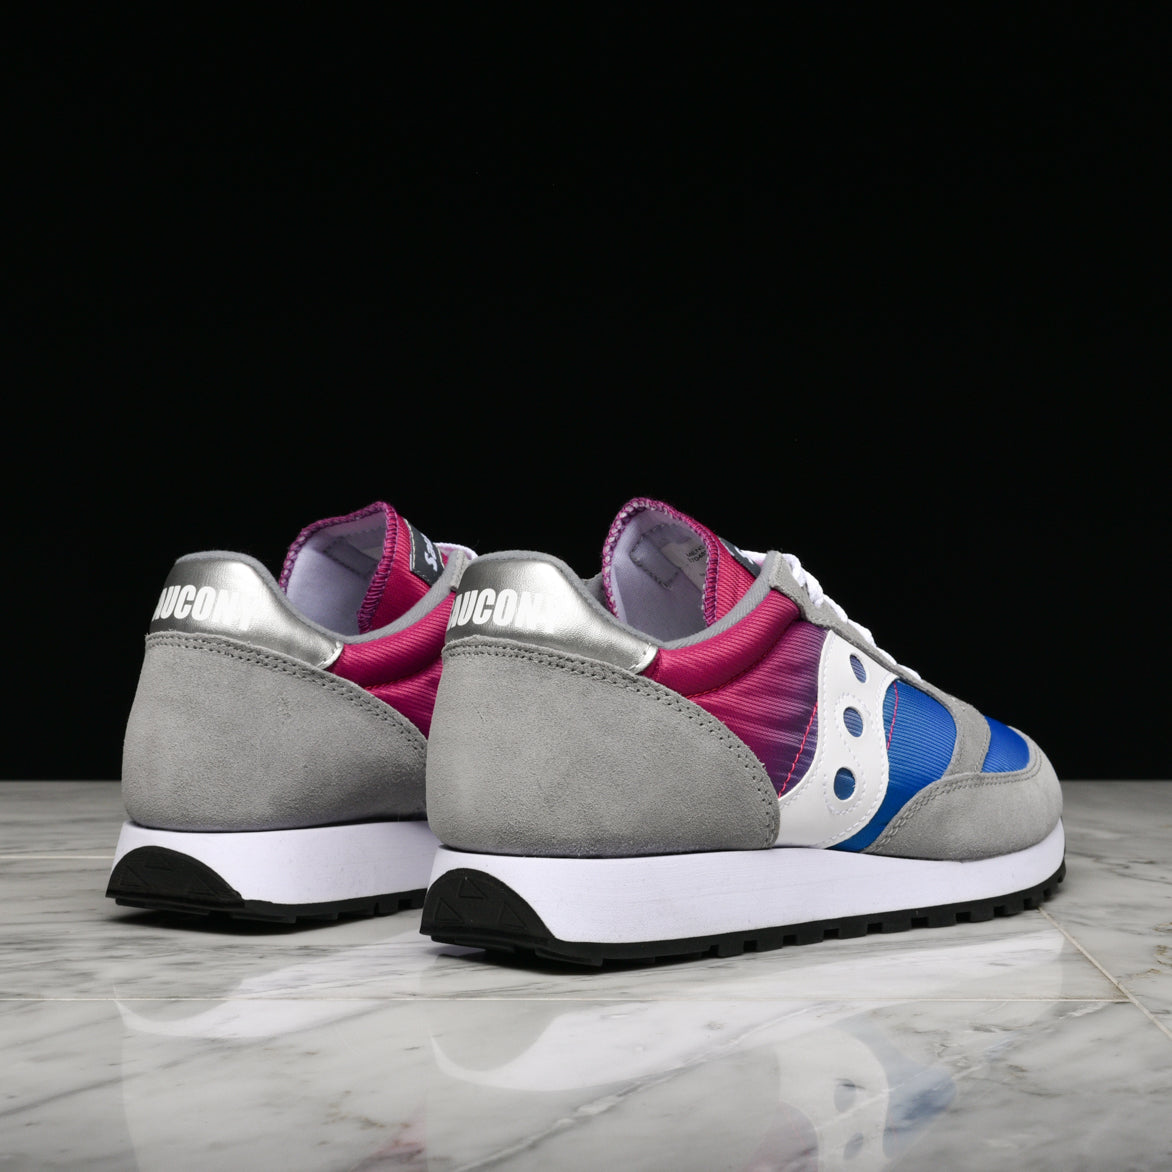 JAZZ ORIGINAL VINTAGE - GREY / BLUE / PINK